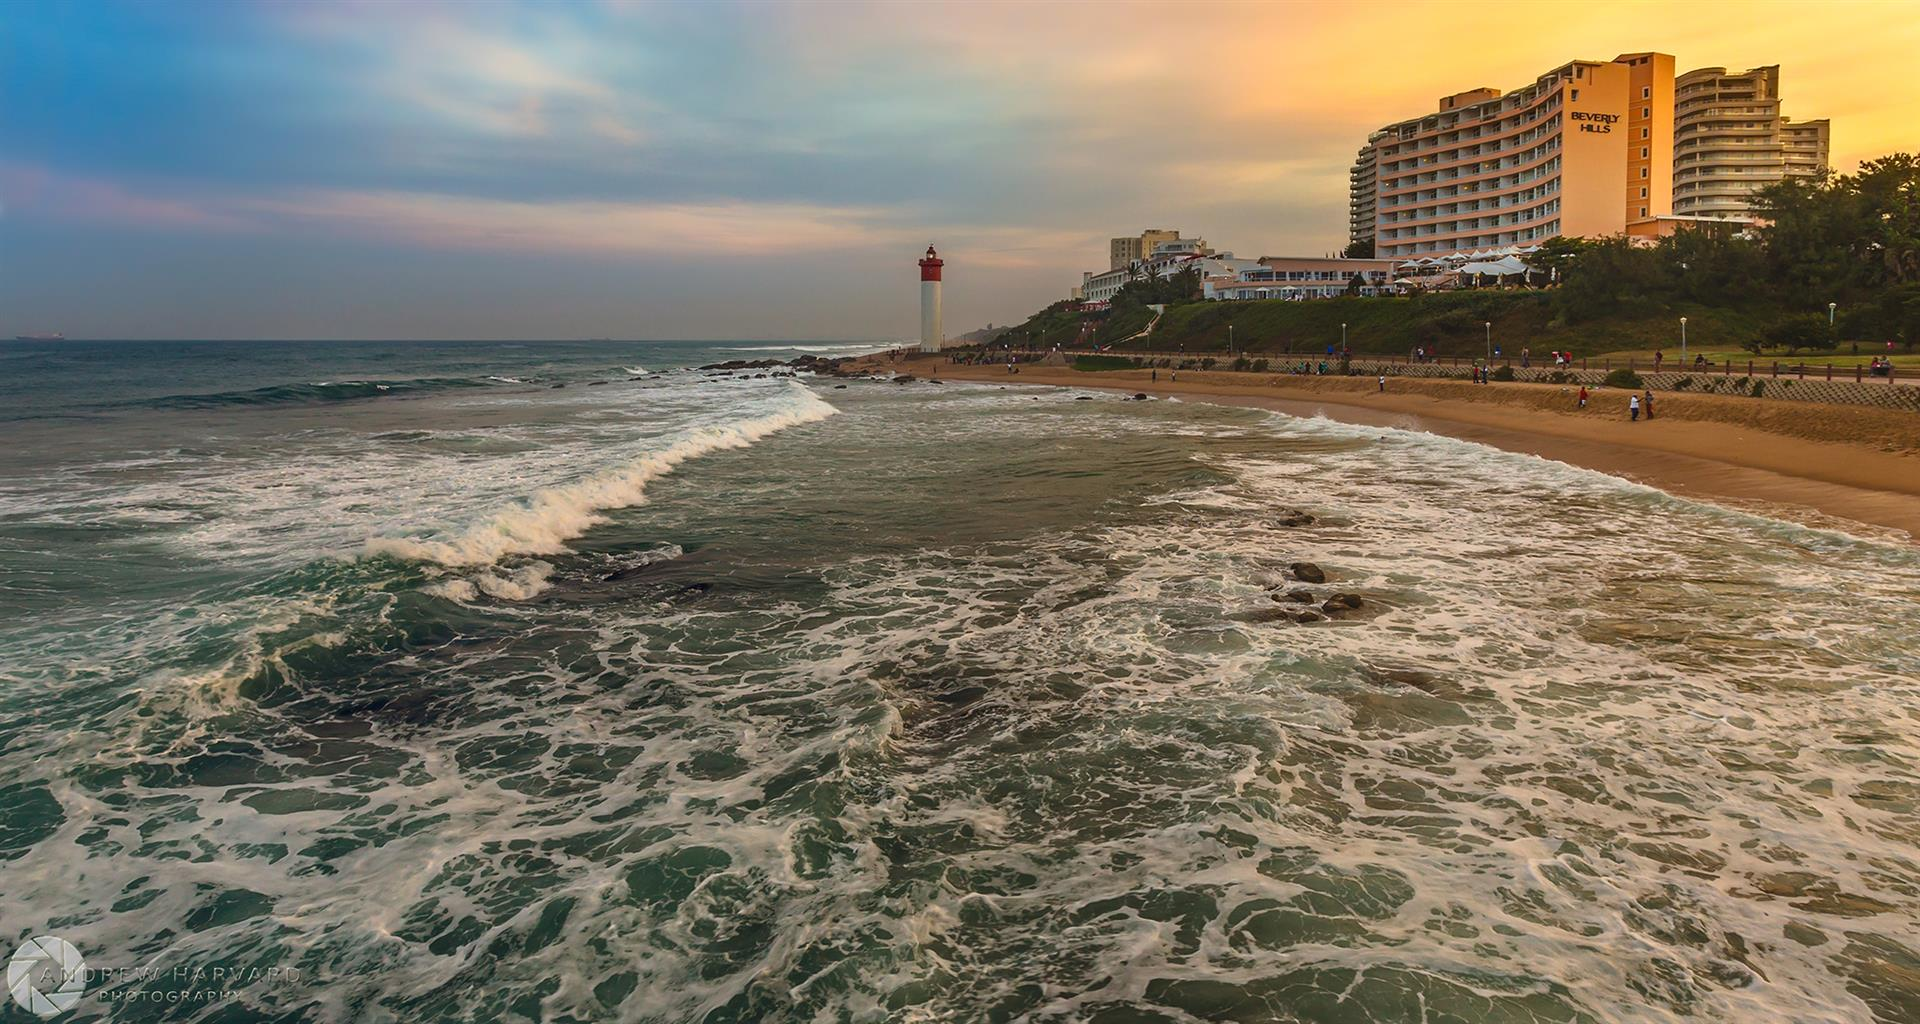 Beverly hills umhlanga durban south africa andrew for Outdoor photo south africa